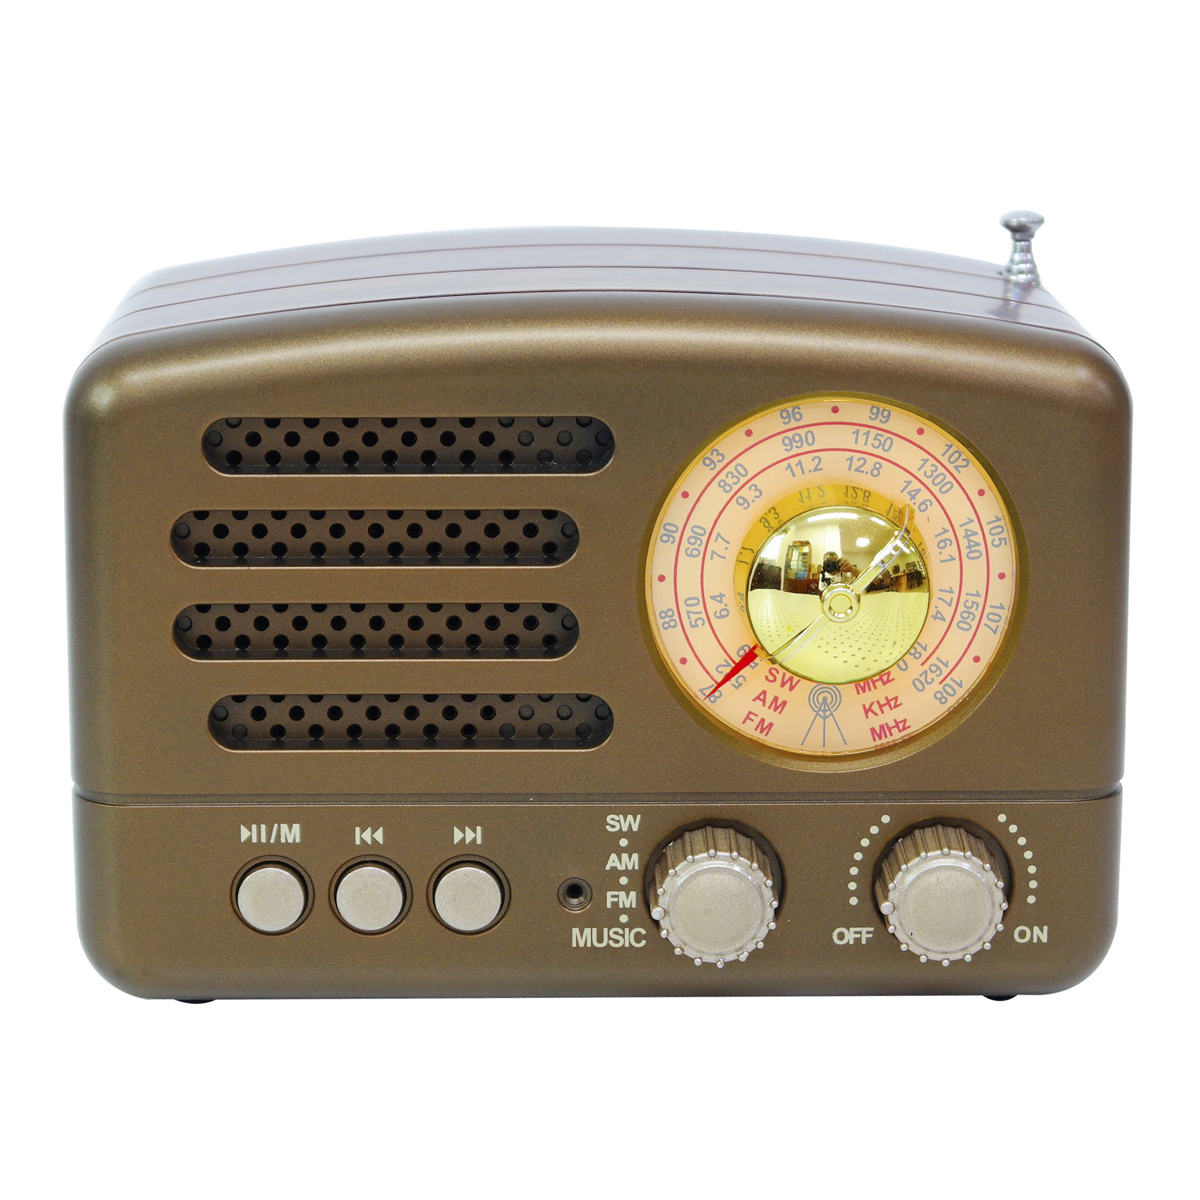 Portable AM FM AUX Vintage Retro Radio SW bluetooth Speaker TF Card USB MP3 Music Player